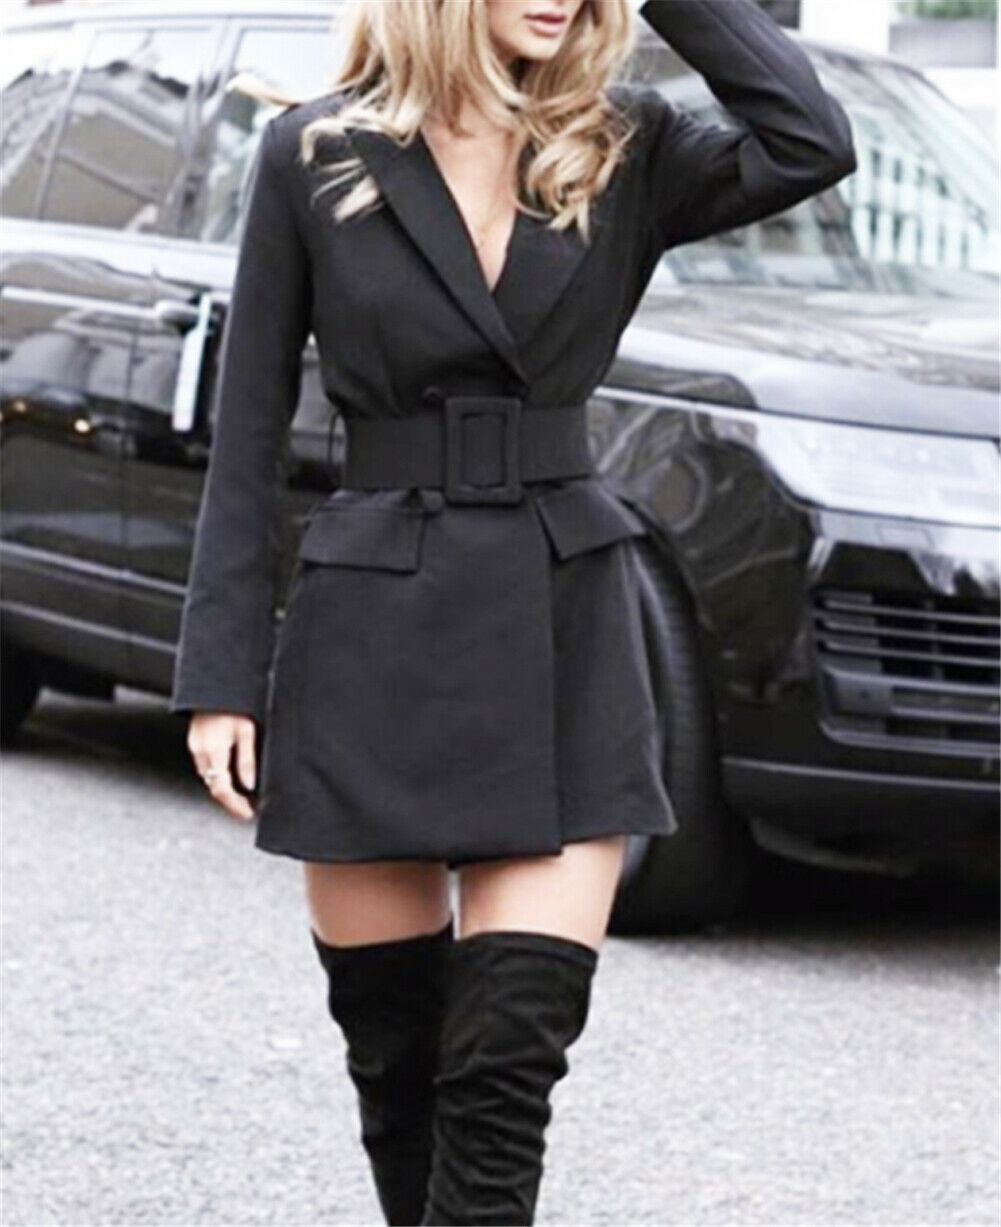 Autumn Women Fashion Solid Casual Coat Short Bodycon Lapel Blazer Double Breasted Long Sleeve V-neck Work Dress With Belt